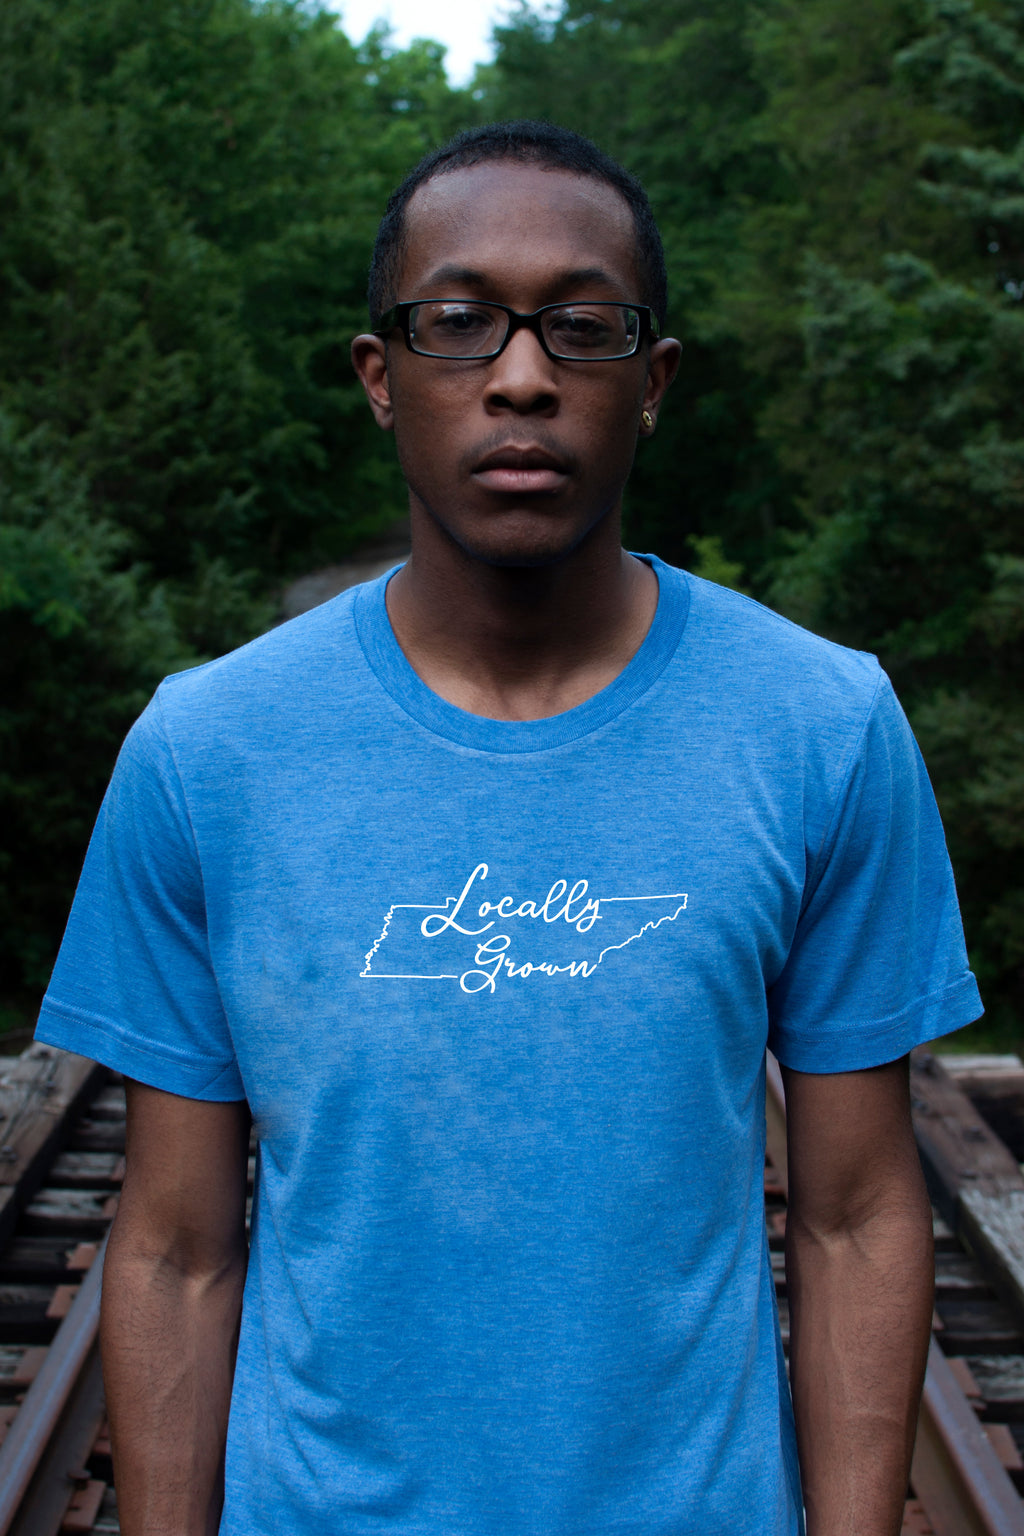 Locally Grown Short Sleeve Crew Cut Tee